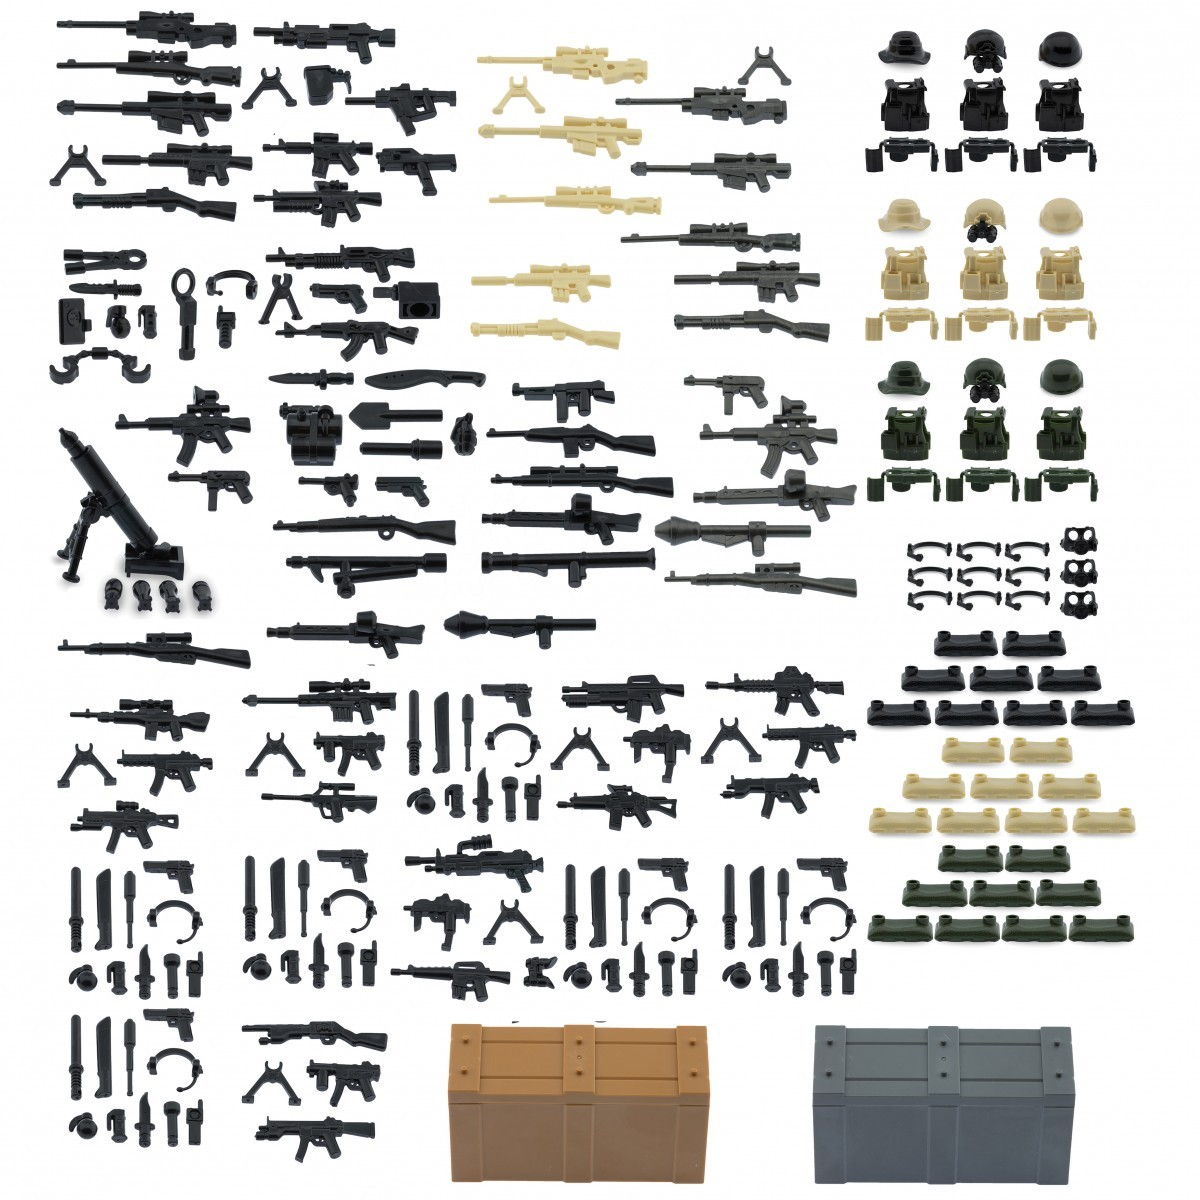 Lego minifigures minifig accessories set a b and modern weapons pack with color packs and crates